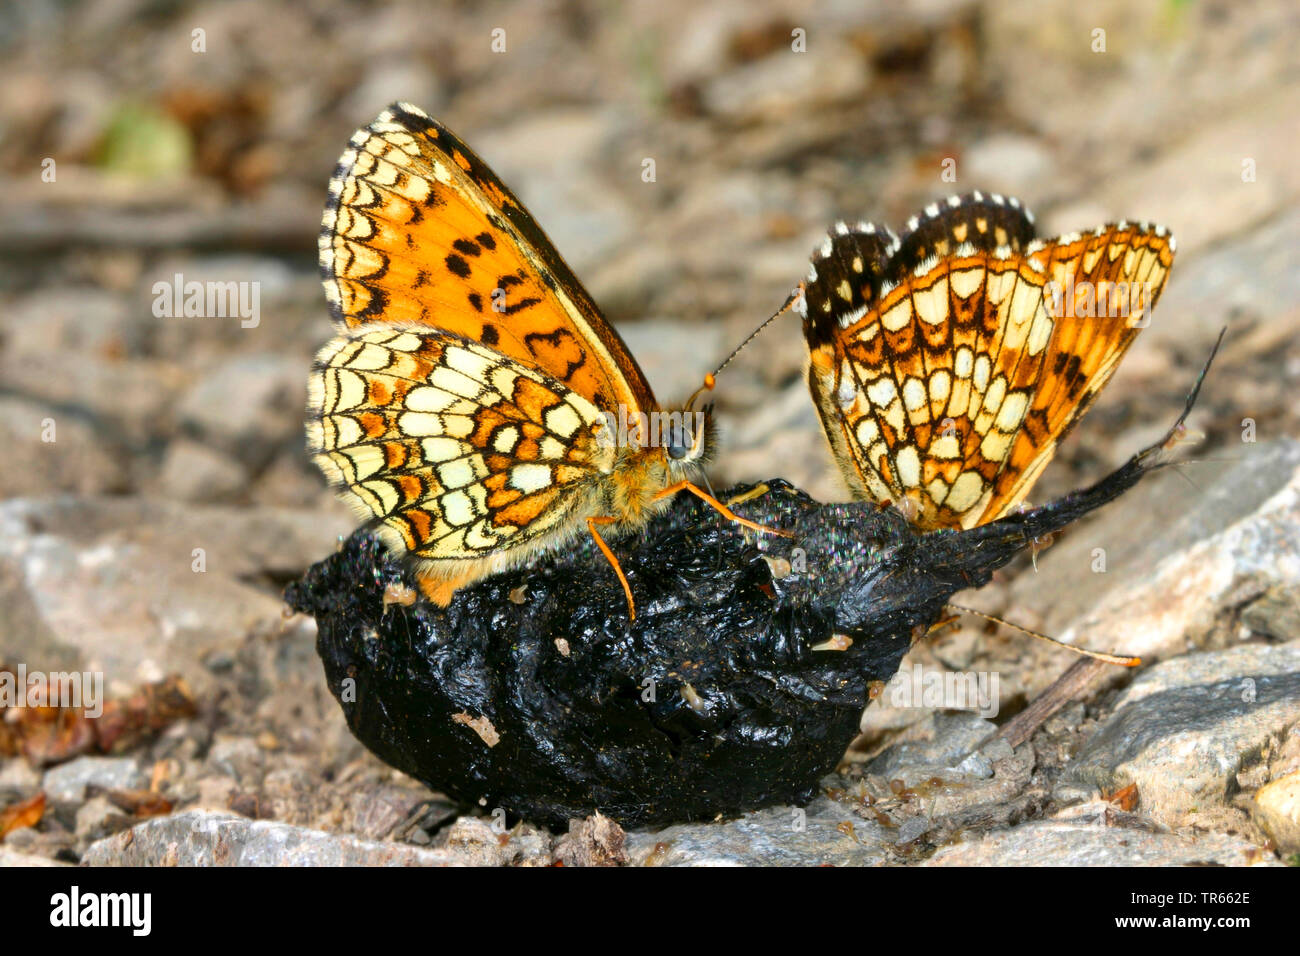 heath fritillary (Melitaea athalia, Mellicta athalia), two heath fritillary sucking mineral nutrients out of a casting, Germany - Stock Image